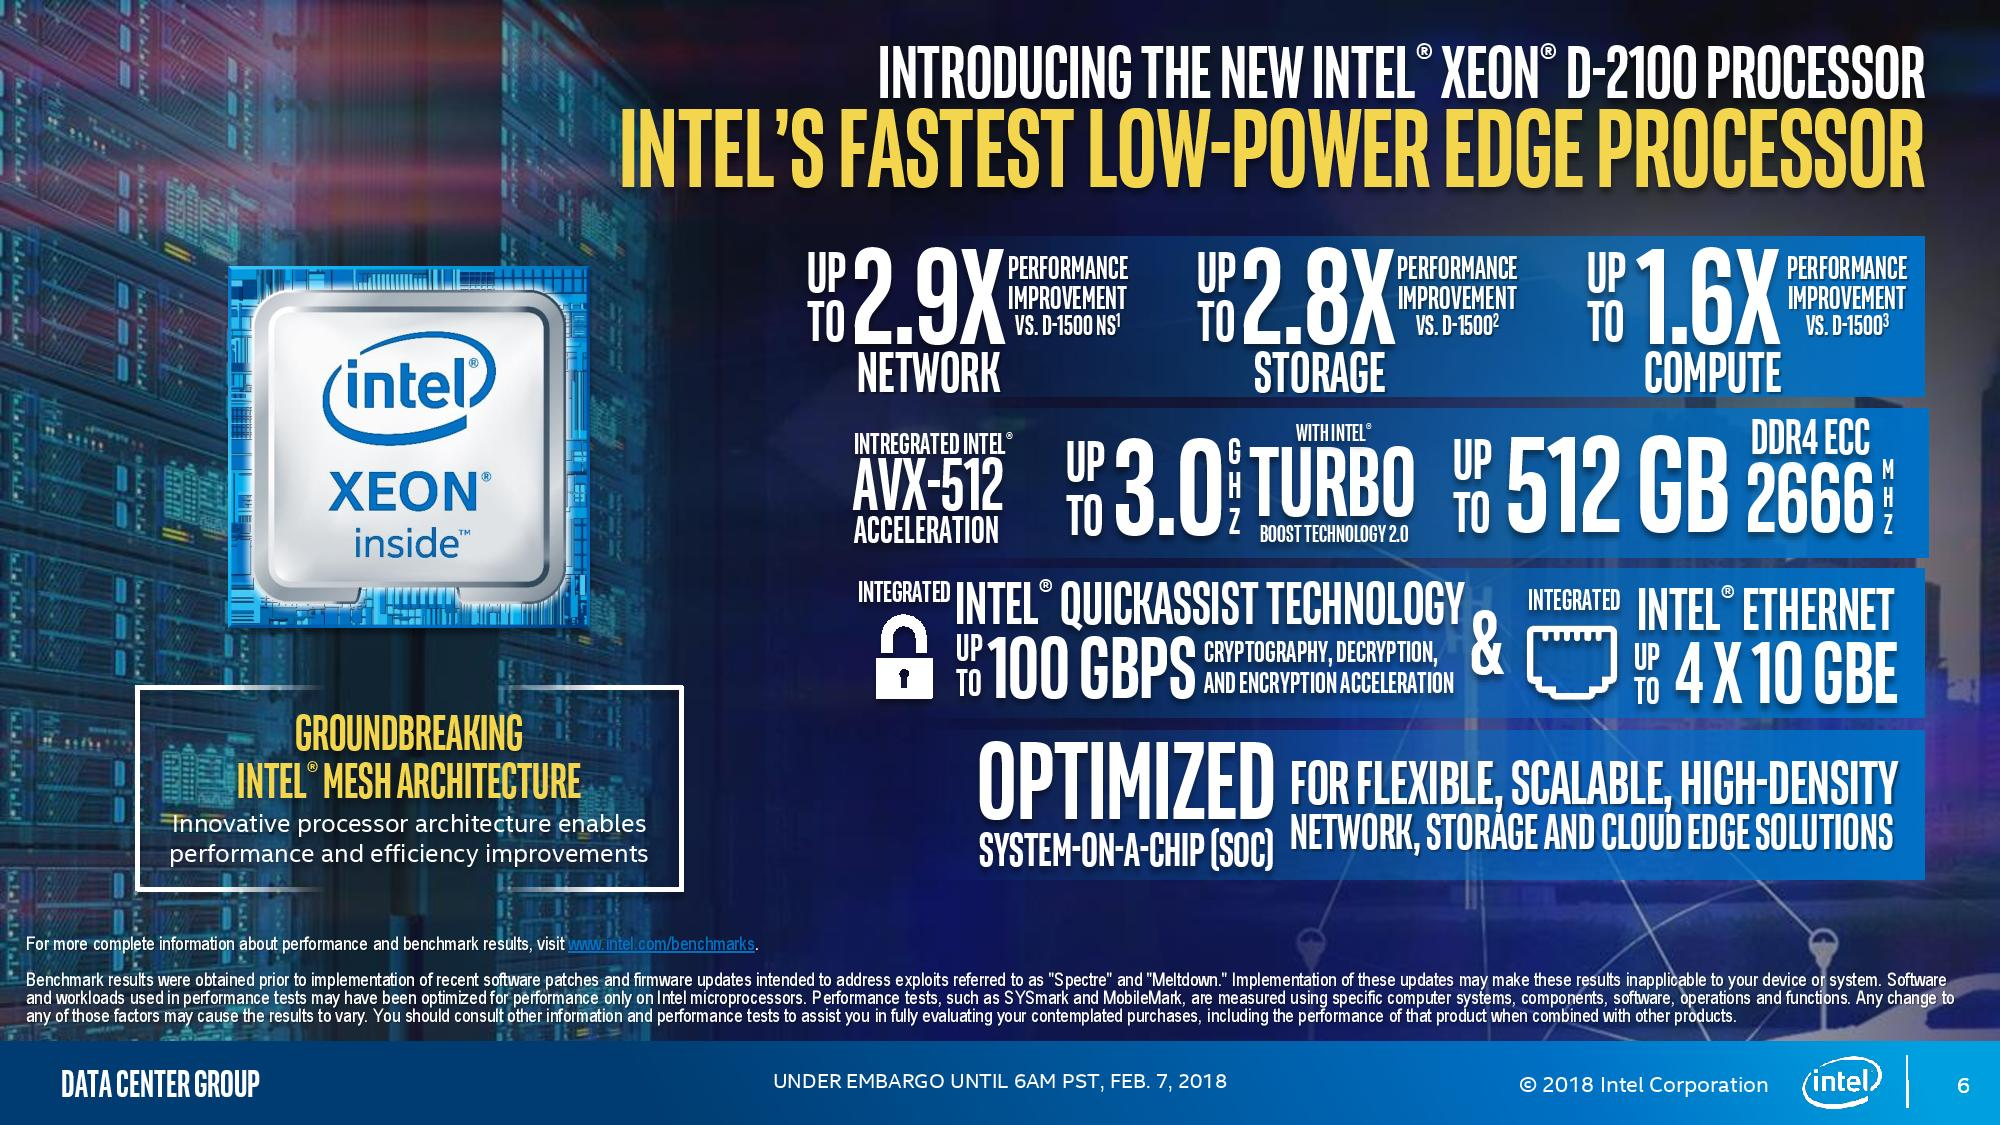 Intel Launches New Xeon-D 2100 Series Lineup - Up To 18 AVX